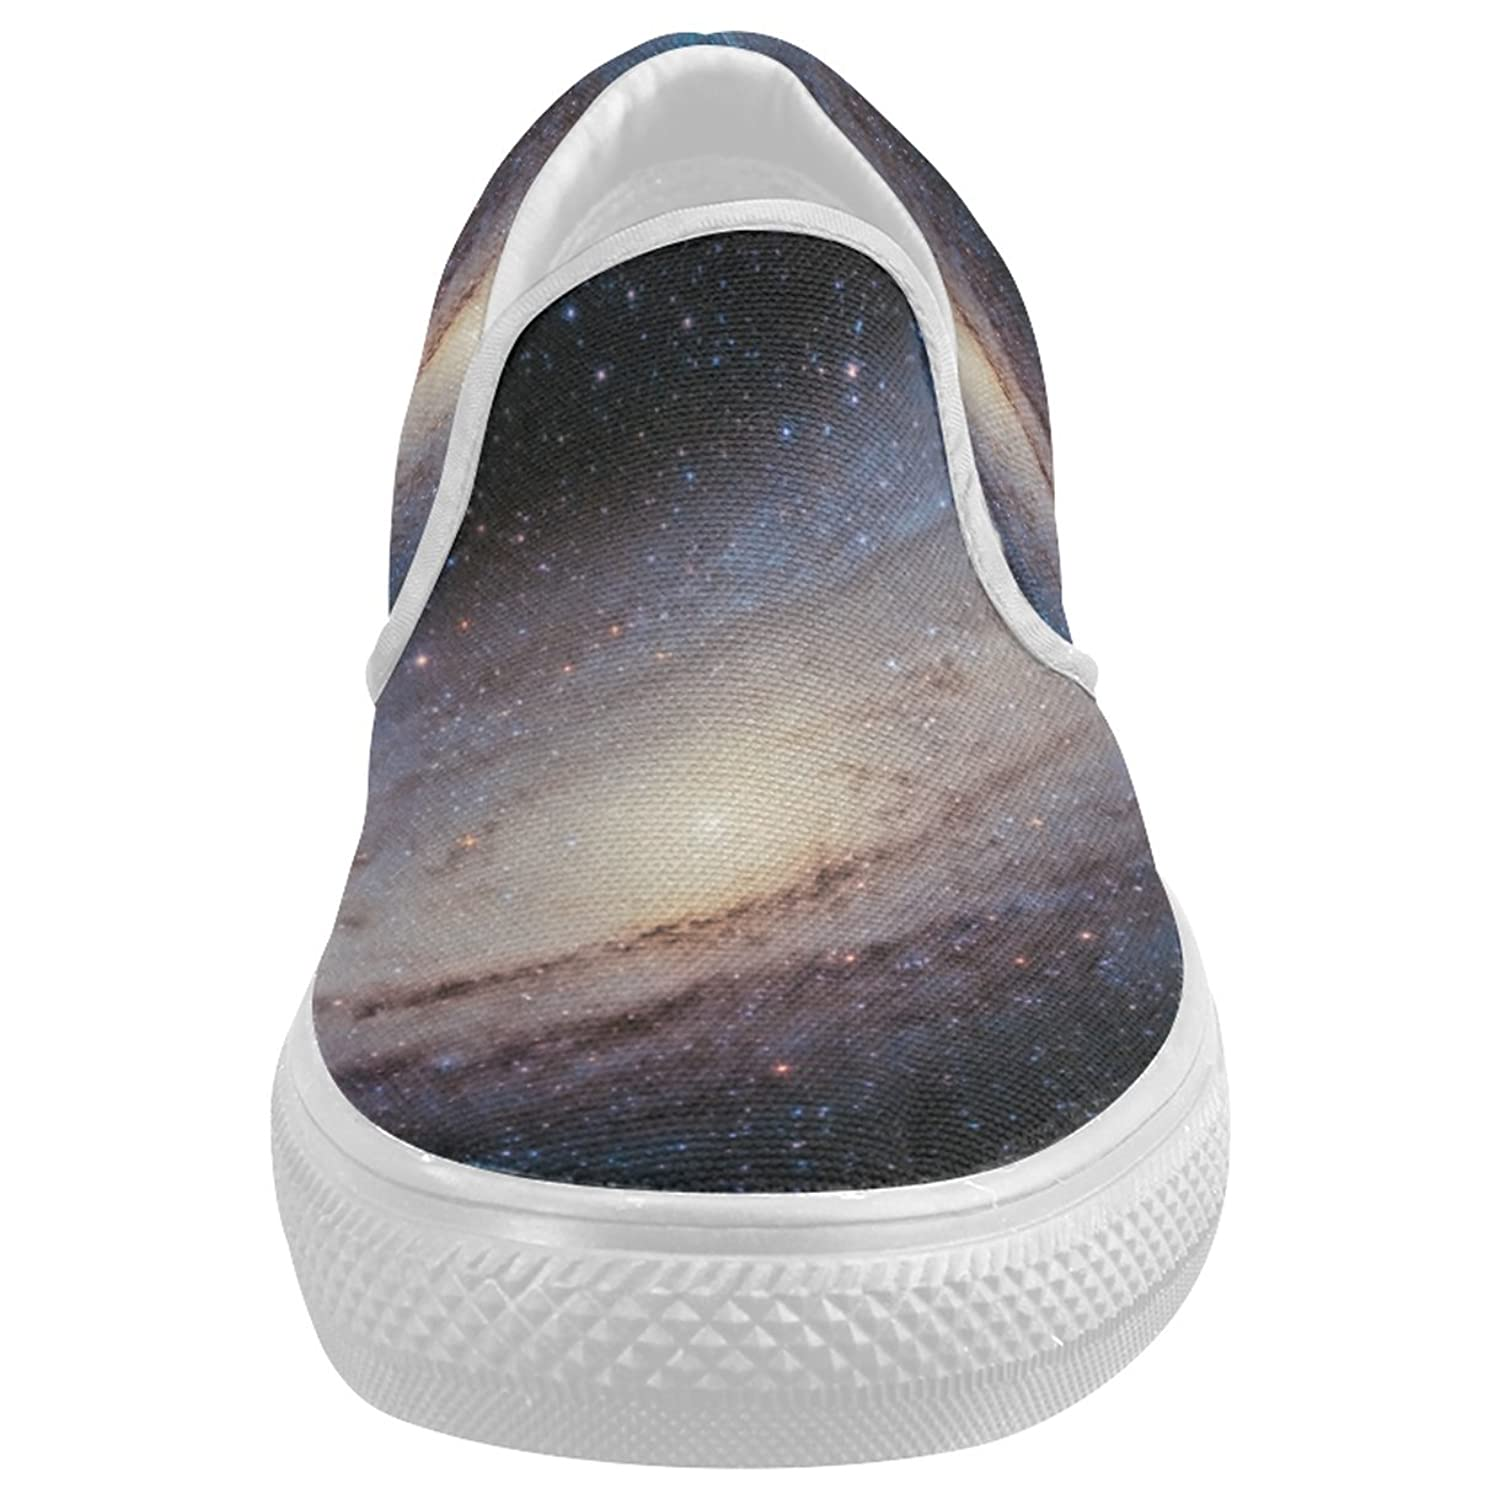 CASECOCO Andromeda Galaxy Universe Canvas Women's Slip On Shoes Fashion Sneakers